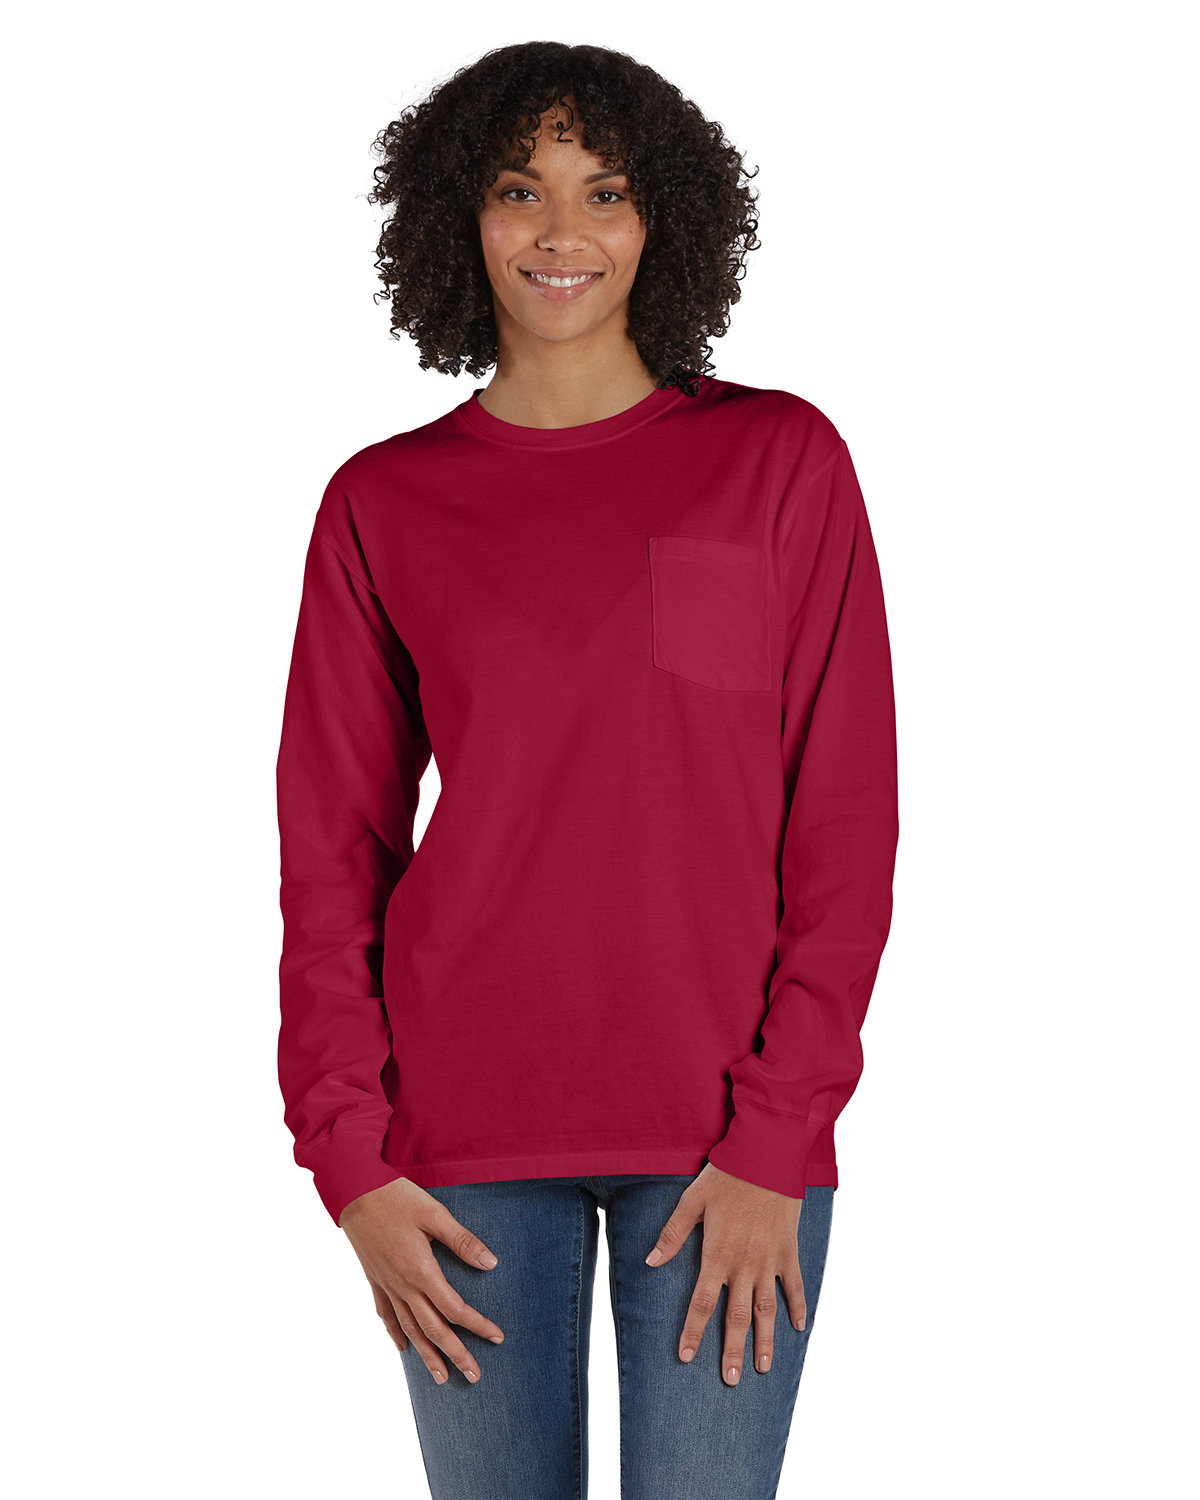 ComfortWash by Hanes Unisex Garment-Dyed Long-Sleeve T-Shirt with Pocket CRIMSON FALL